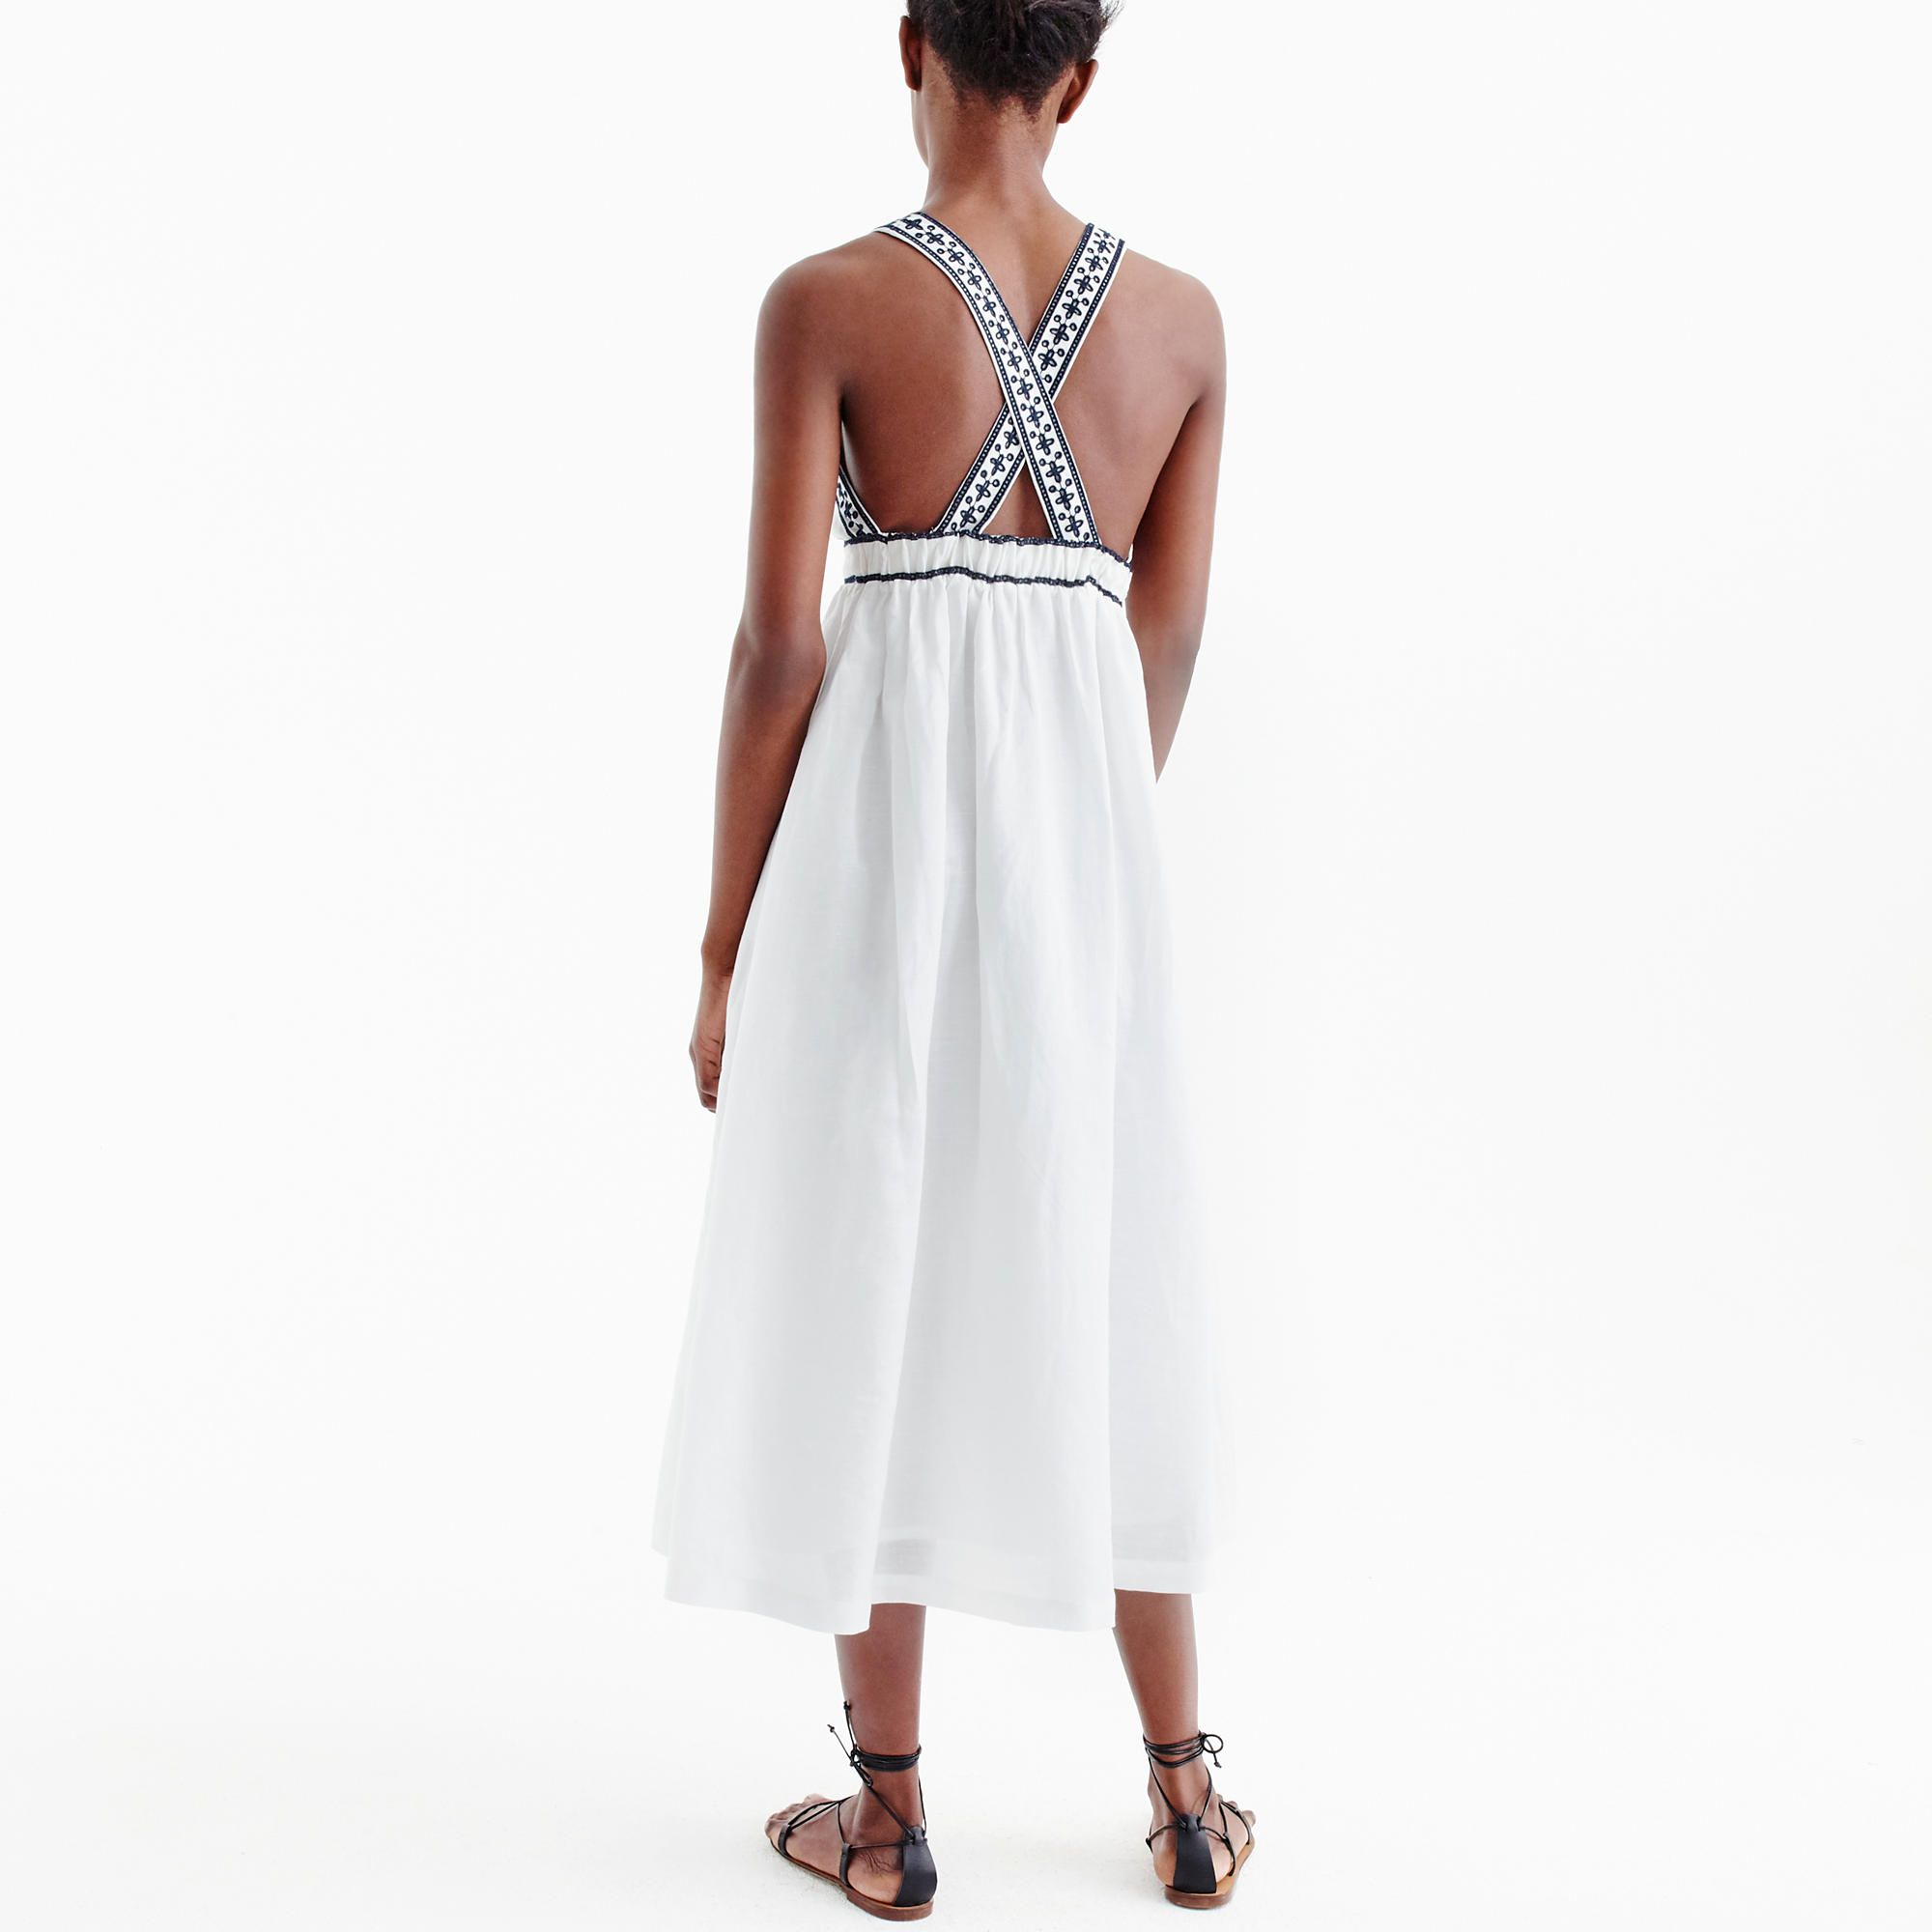 Embroidered cross-back maxi dress | Pinterest